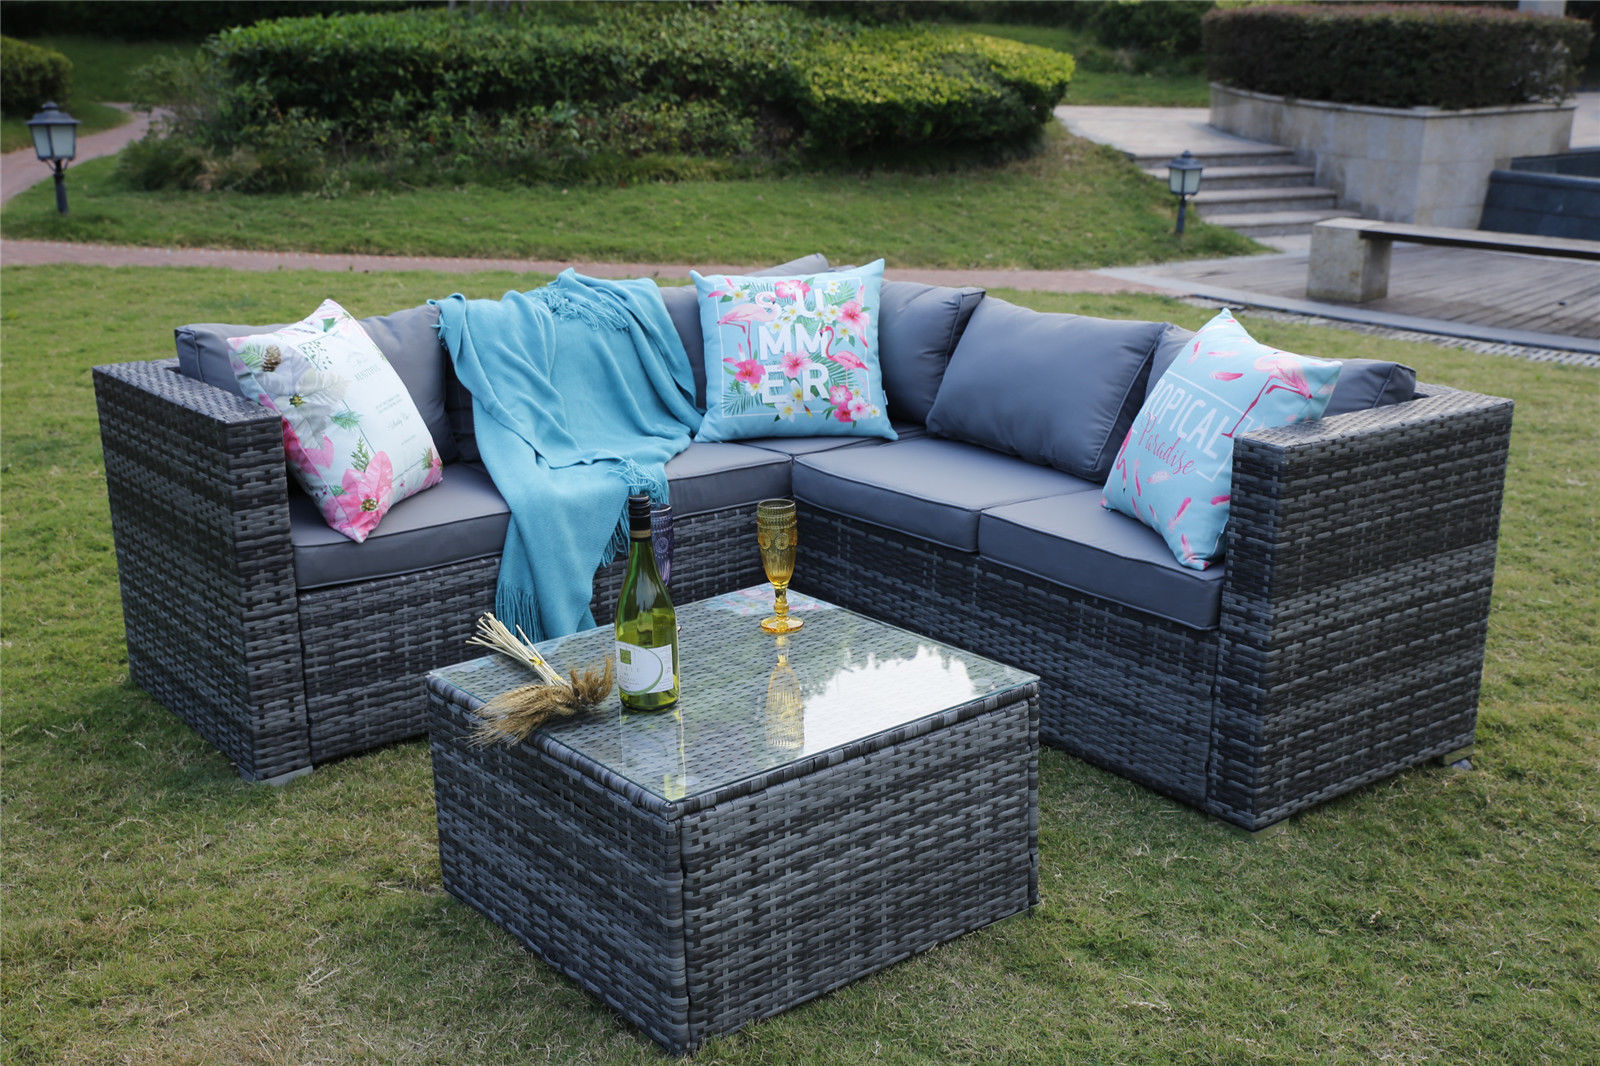 Outdoor Rattan Garden Furnishings 5 Seater Nook Sofa Patio Set with Cowl Risk